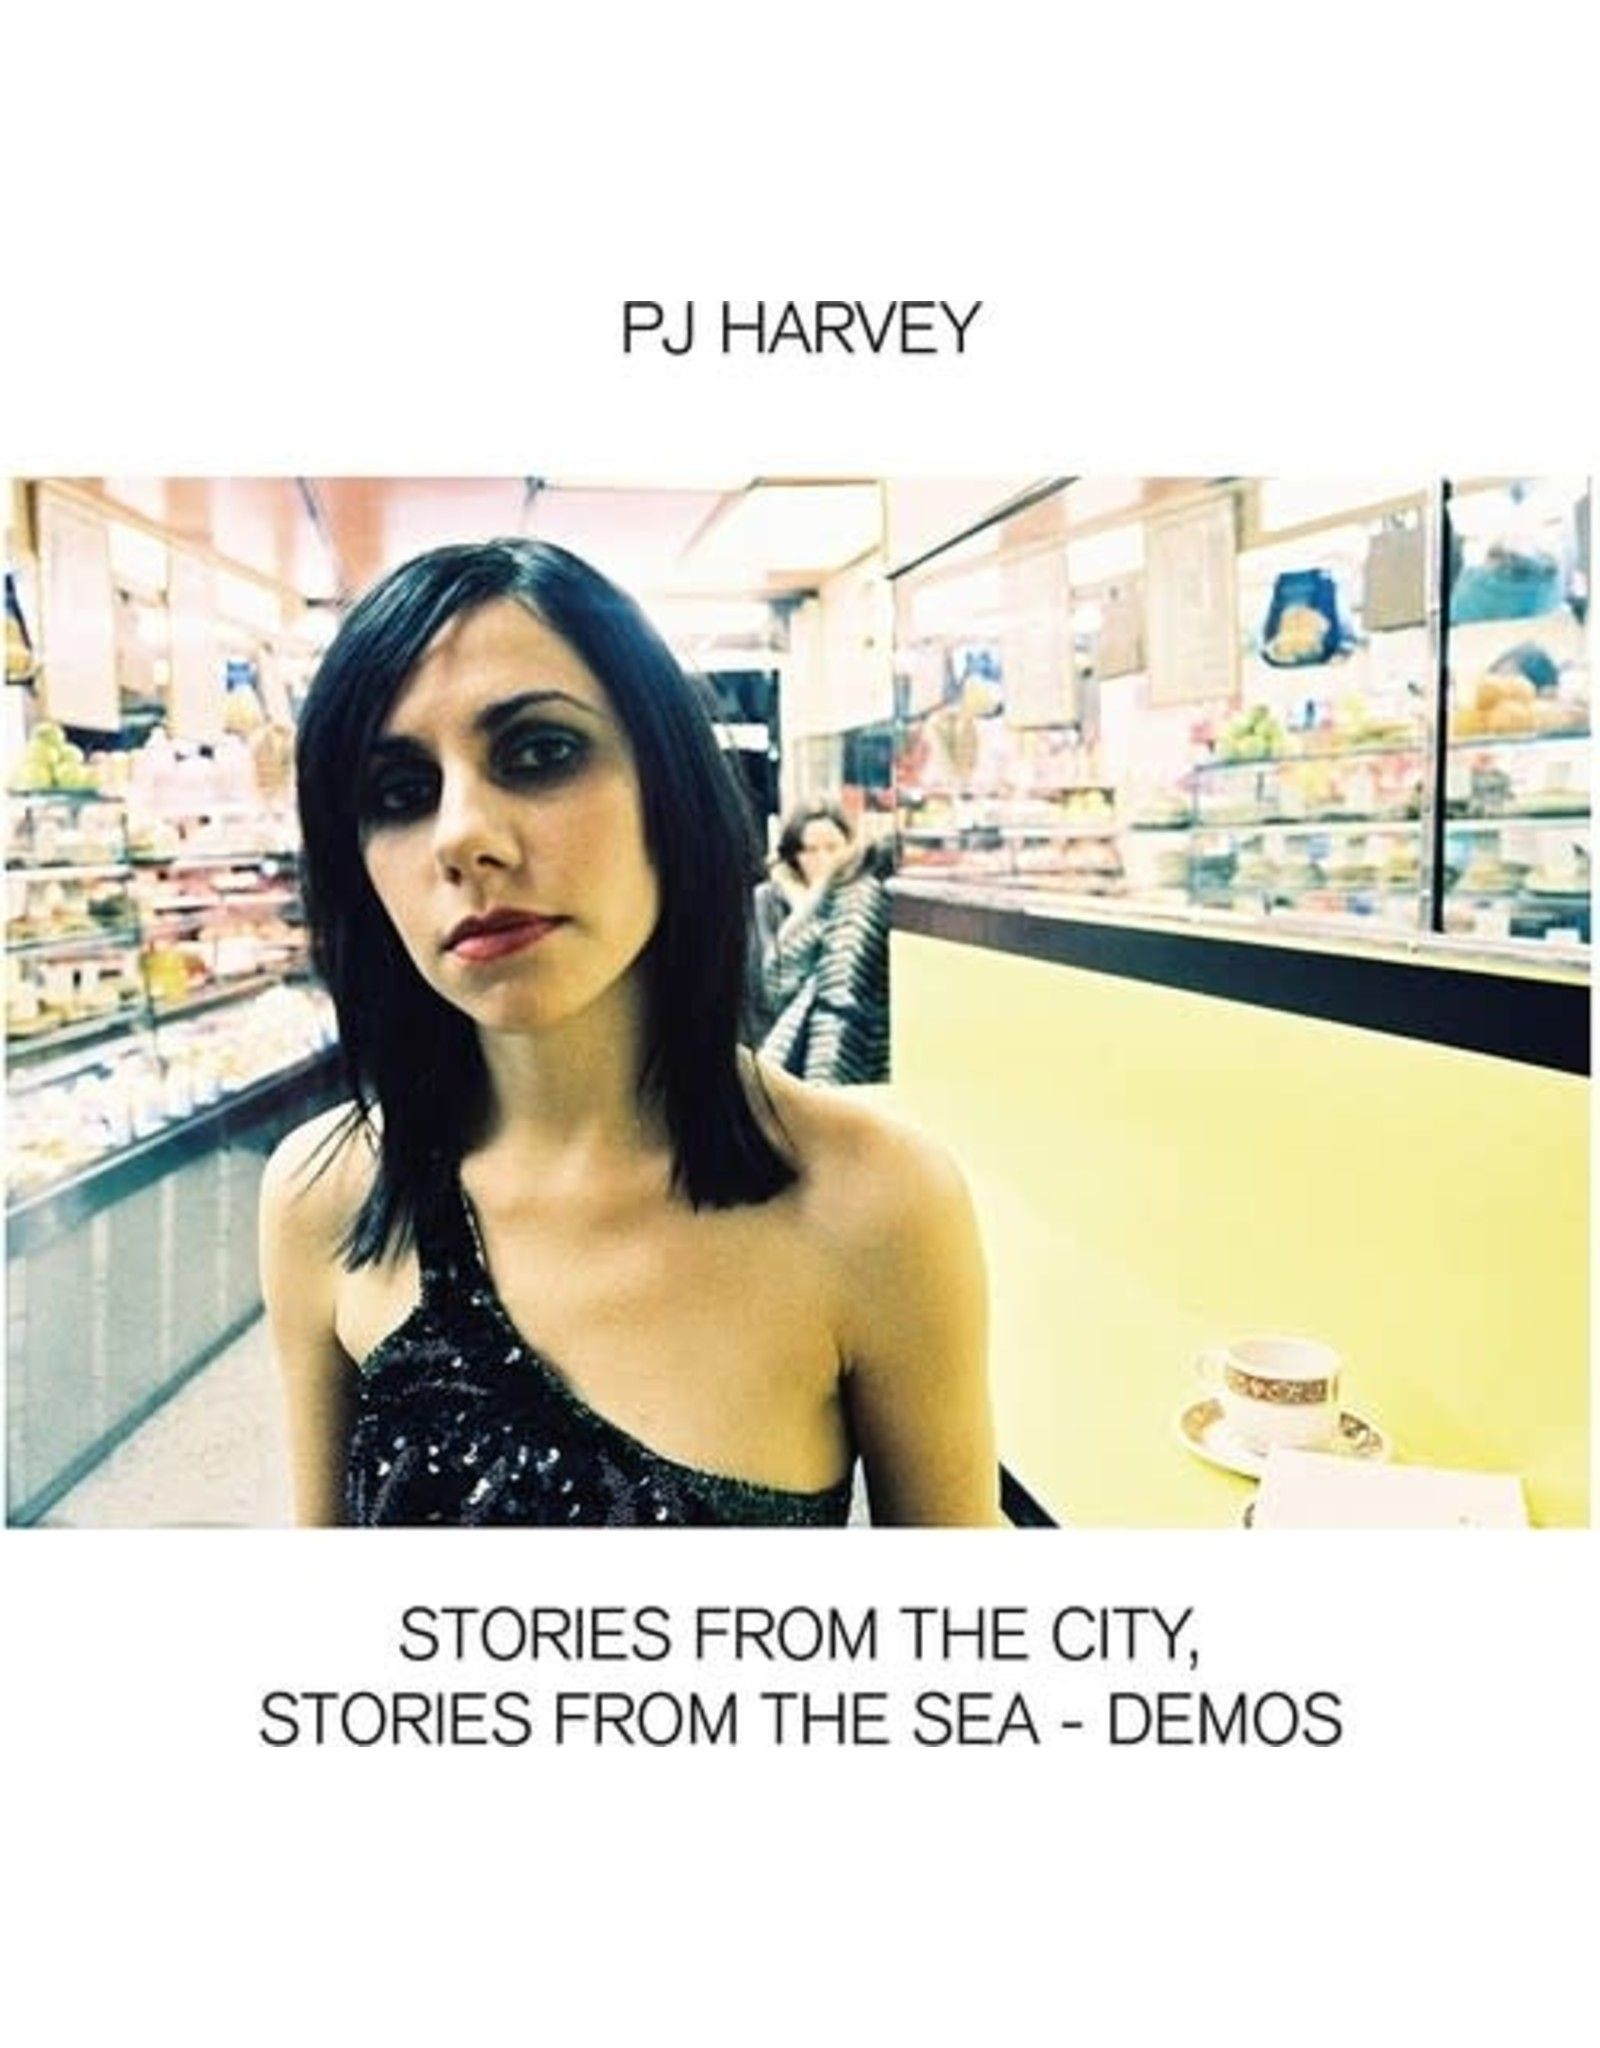 New Vinyl PJ Harvey - Stories From The City, Stories From The Sea - Demos LP